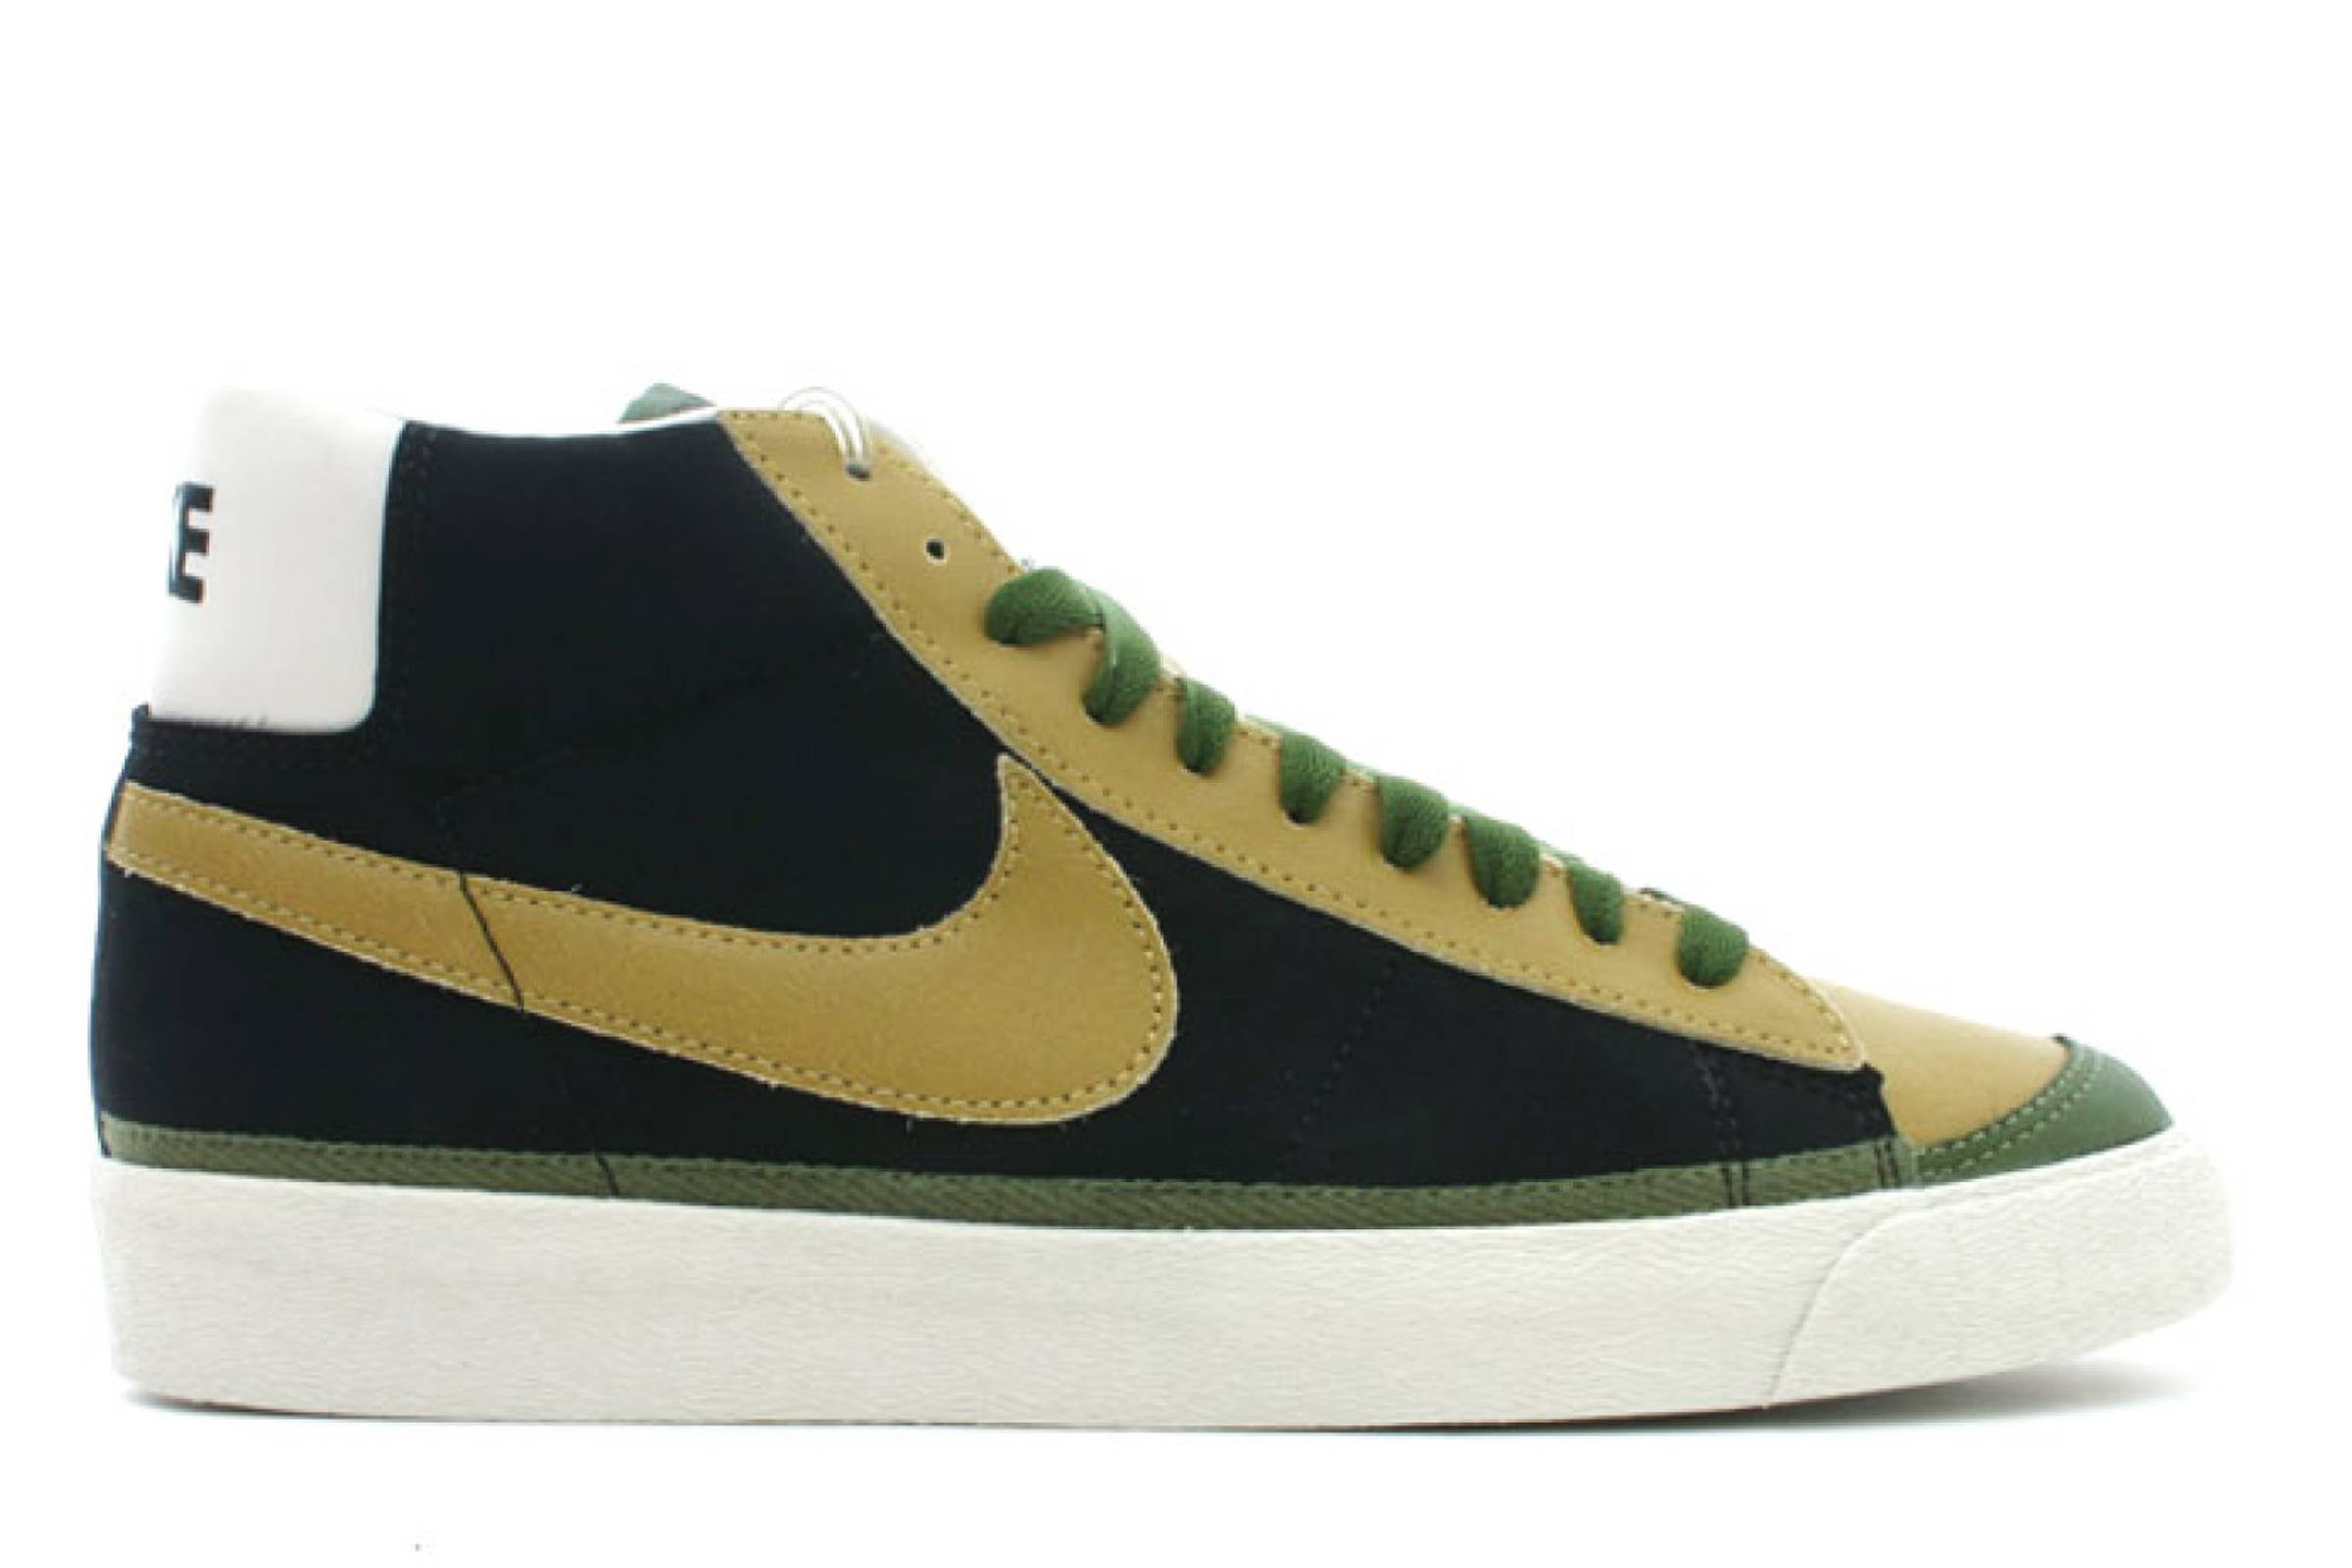 new products 4289d 5cb4c Cooler Than Iceman: A History of the Nike Blazer | Grailed